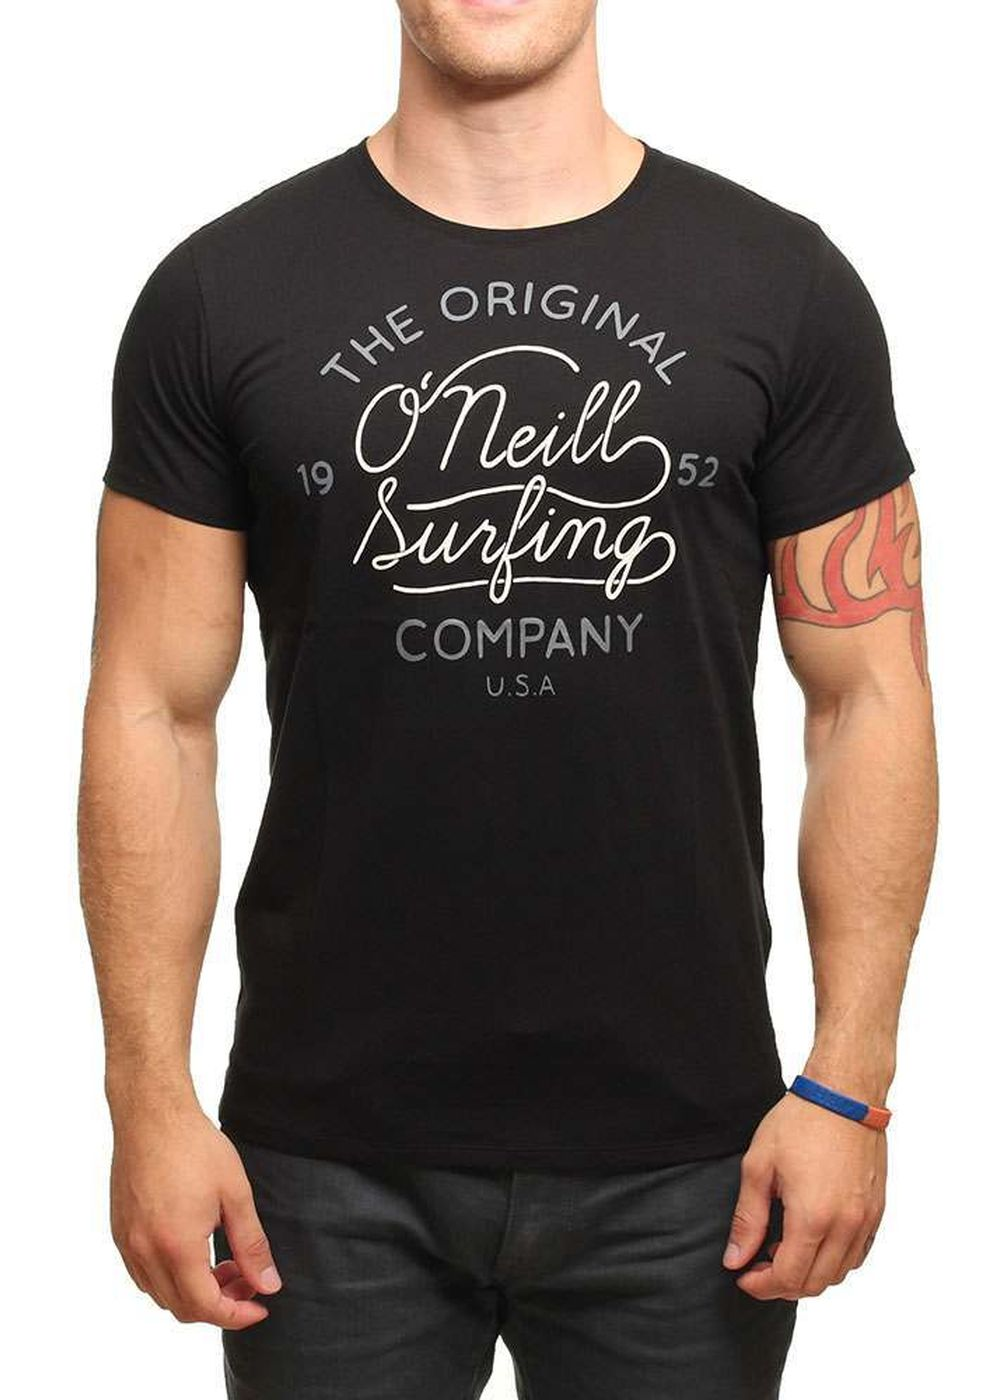 ONEILL COMPANY TEE Black Out